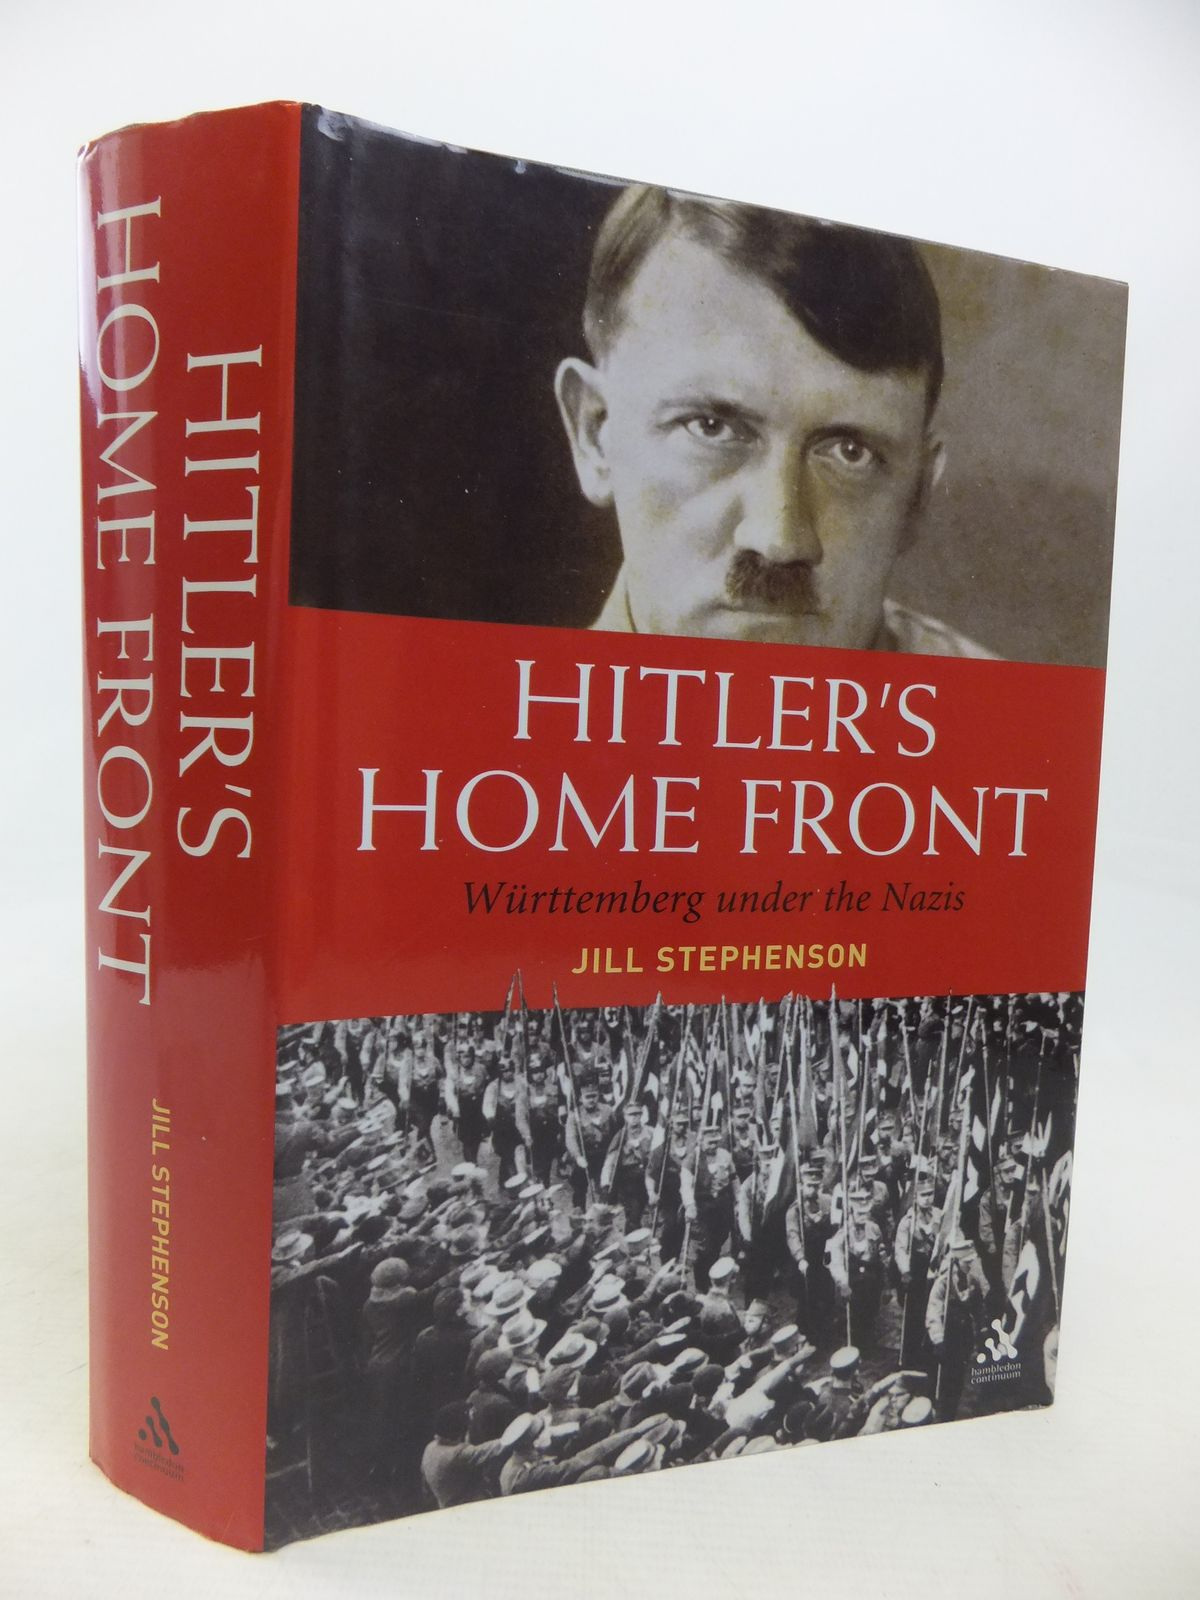 Photo of HILTER'S HOME FRONT WURTTEMBERG UNDER THE NAZIS